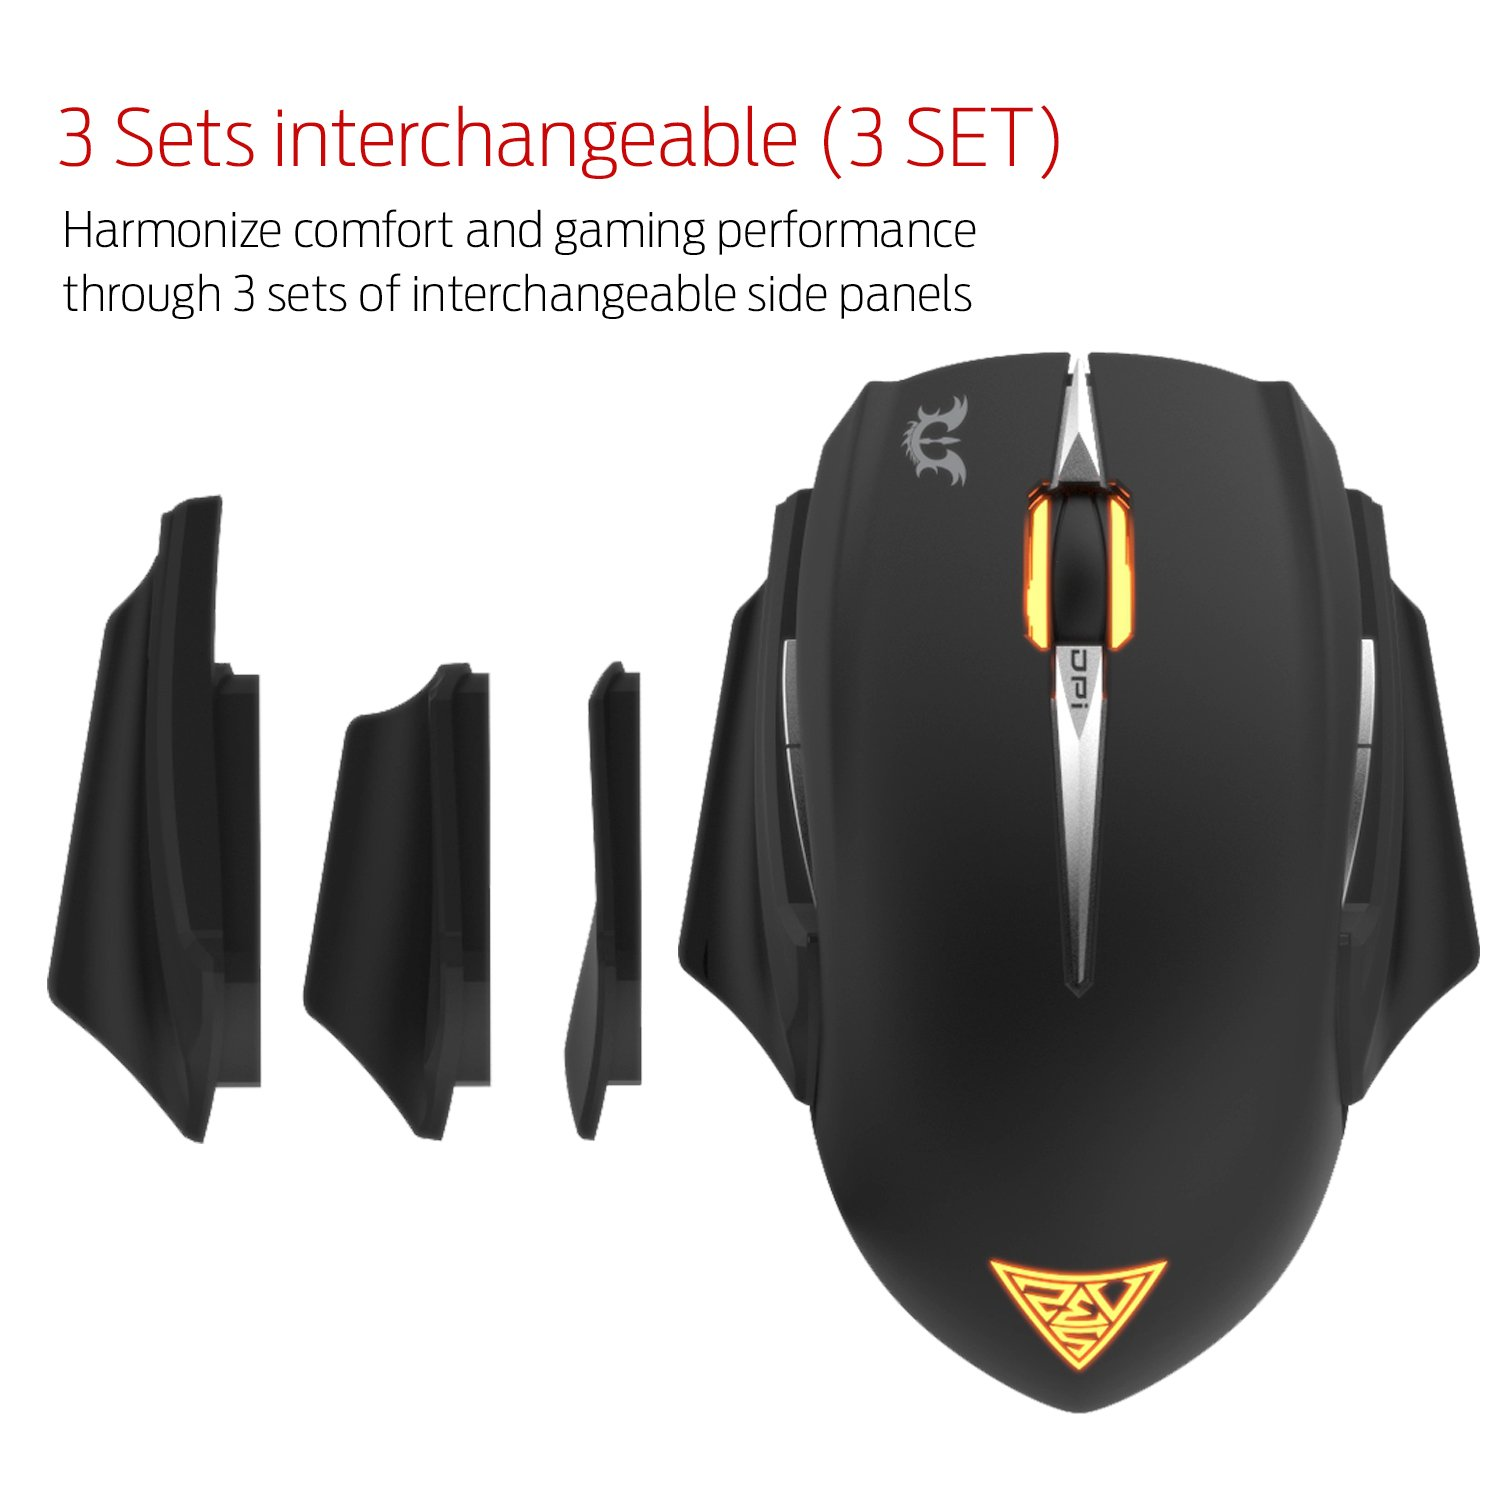 GAMDIAS Erebos GMS7500 Optical MOBA Gaming Mouse, 3 Set Ambidextrous  Adjustable Side Panels Weight System, 7 Programmable Buttons, 8200 DPI for PC by GAMDIAS (Image #7)